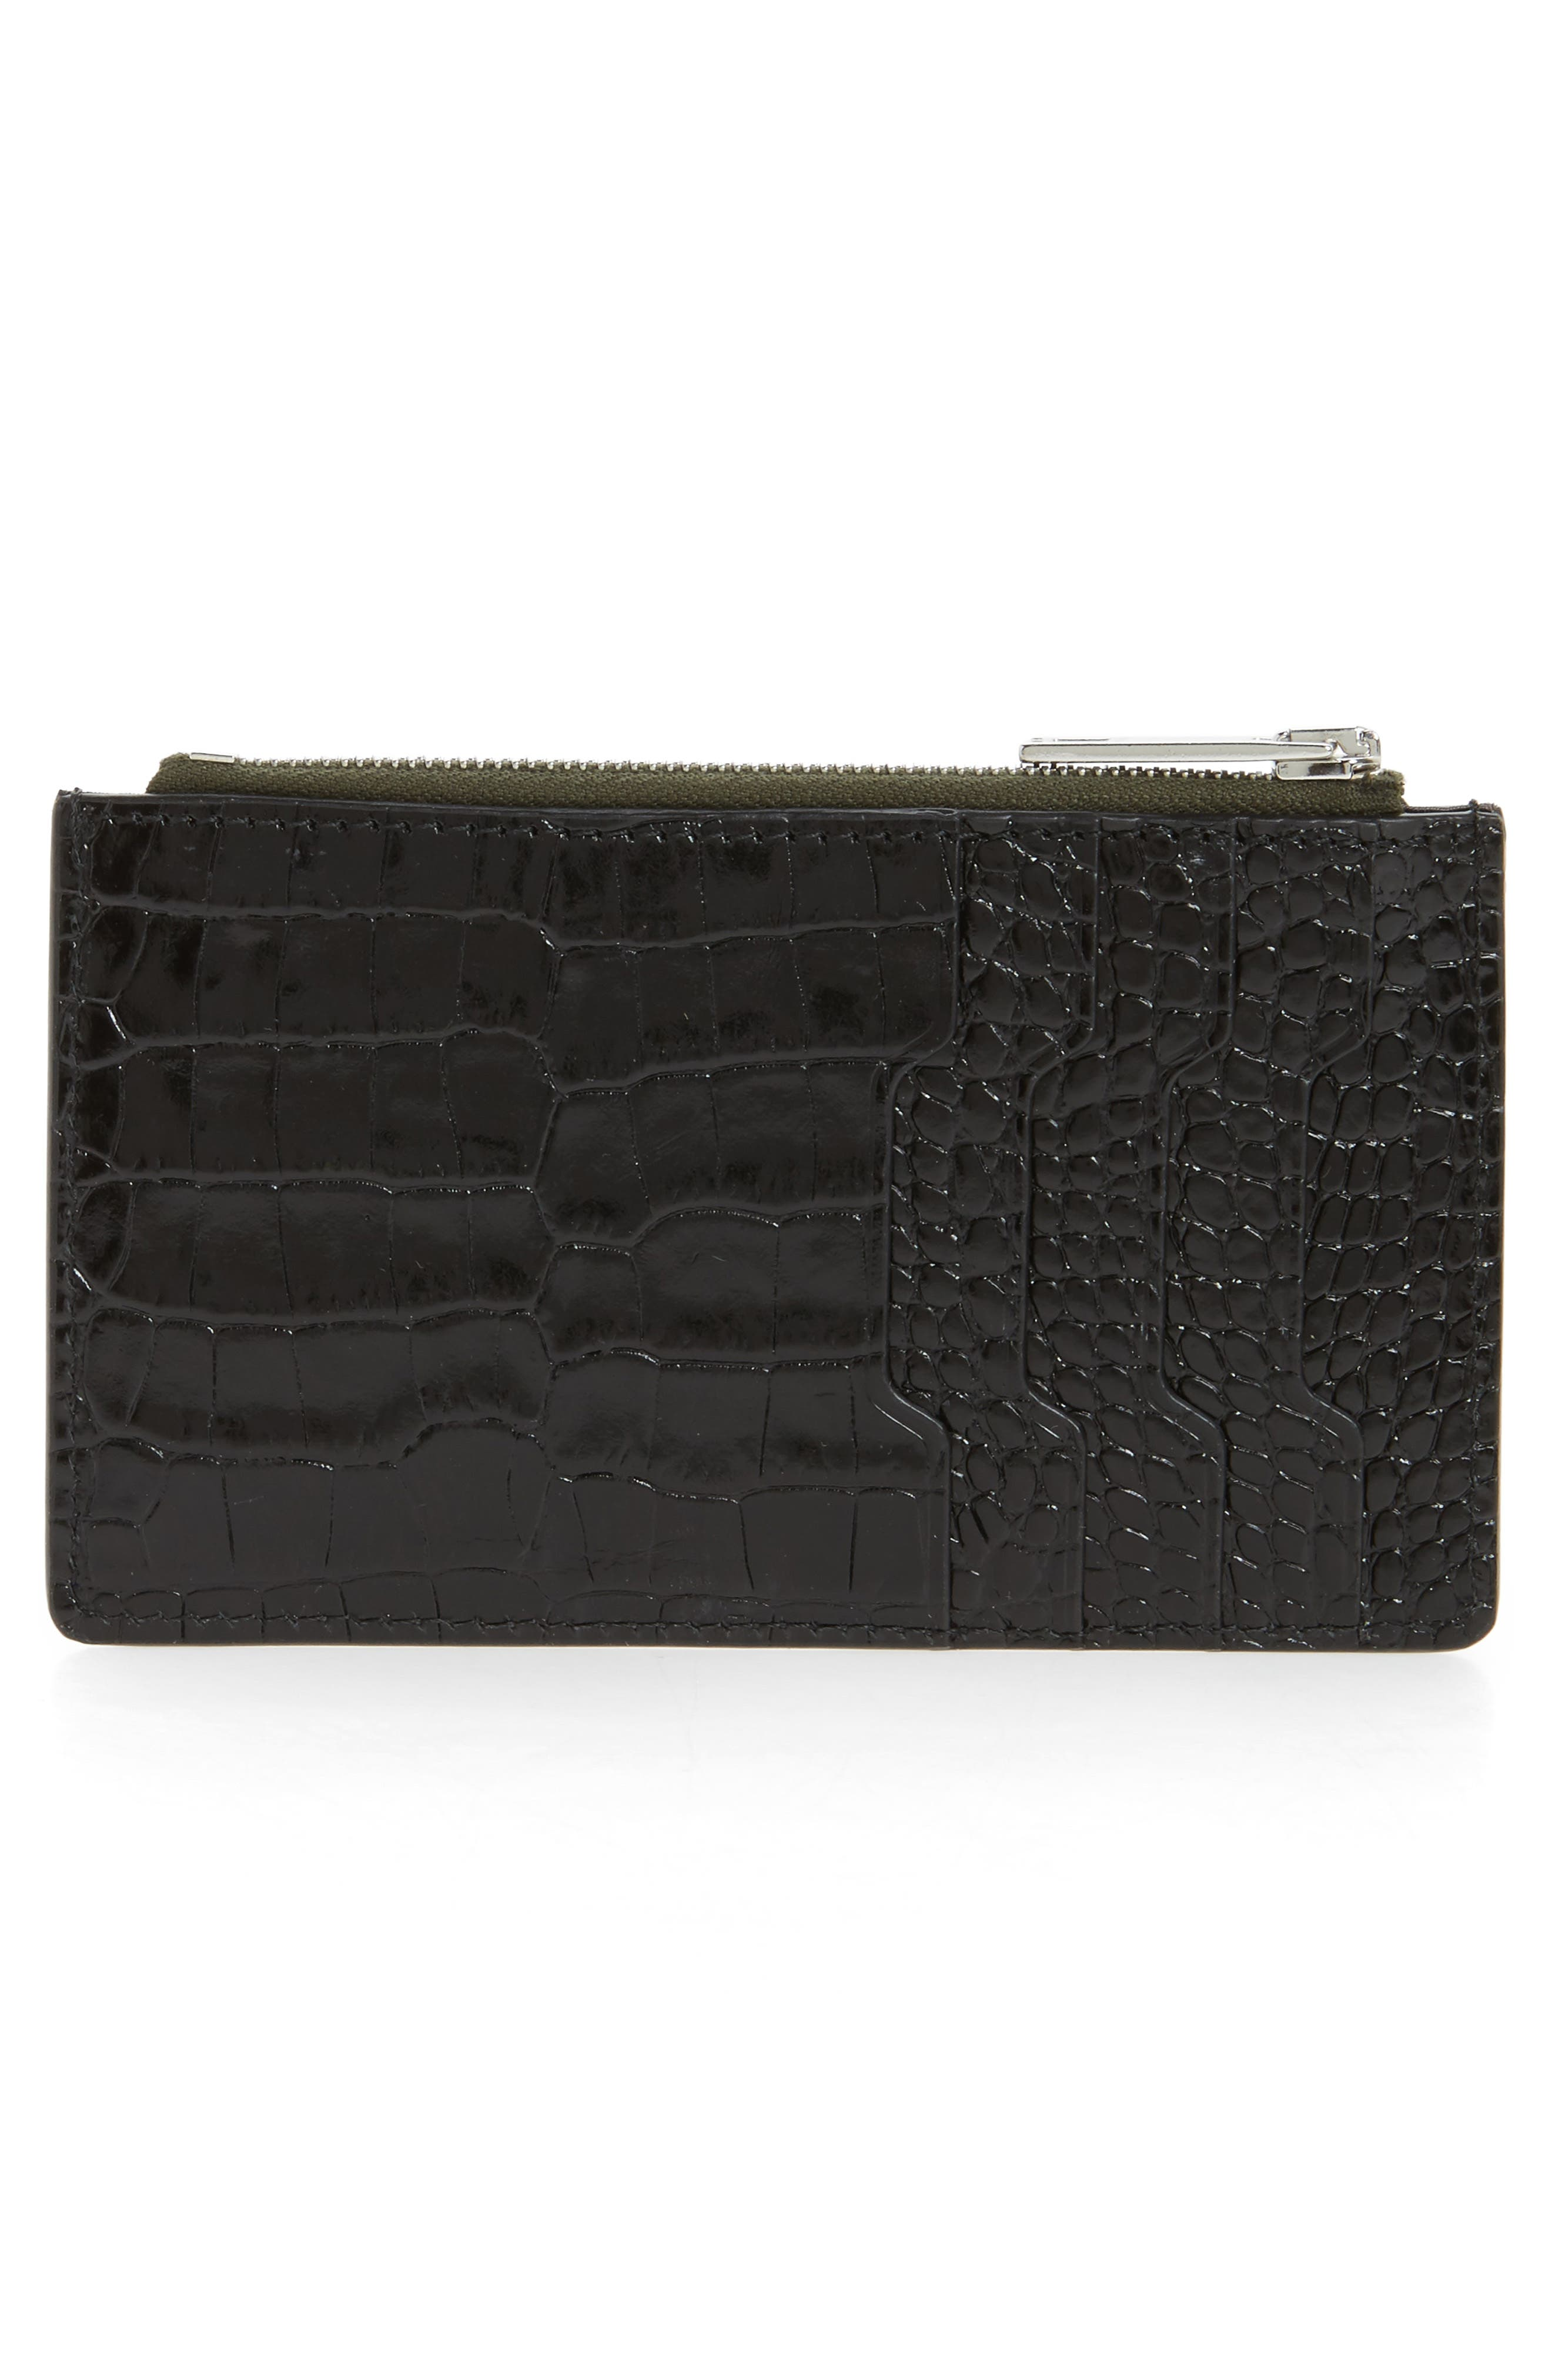 Croc Embossed Leather Zip Card Case,                             Alternate thumbnail 2, color,                             Black Croco